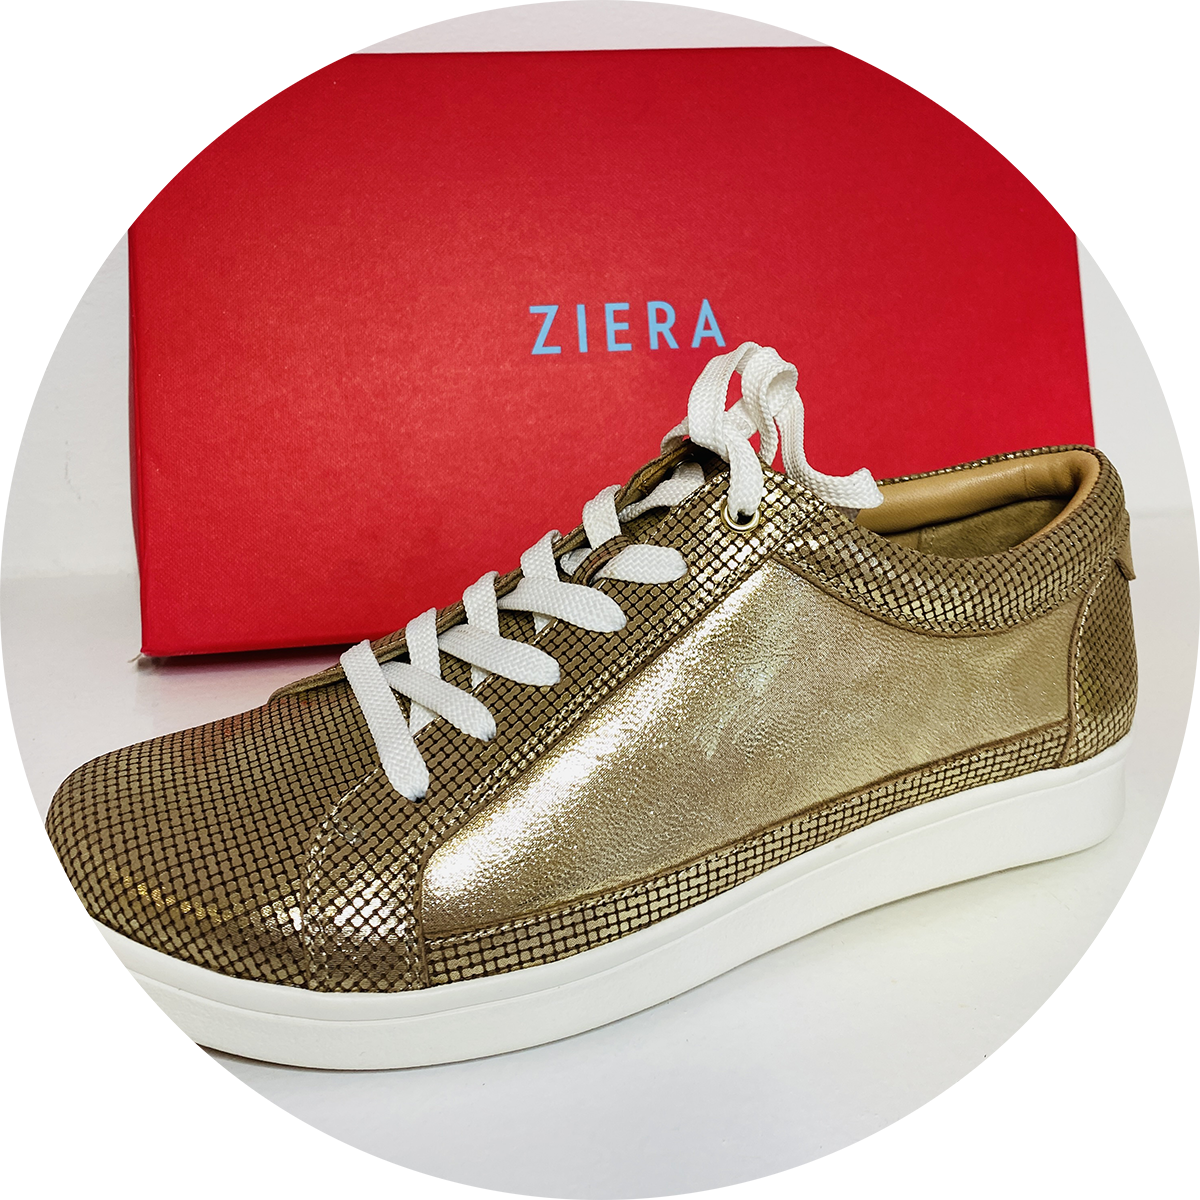 Orthotics Shoes - Ziera low-top gold sneaker - SO Podiatry